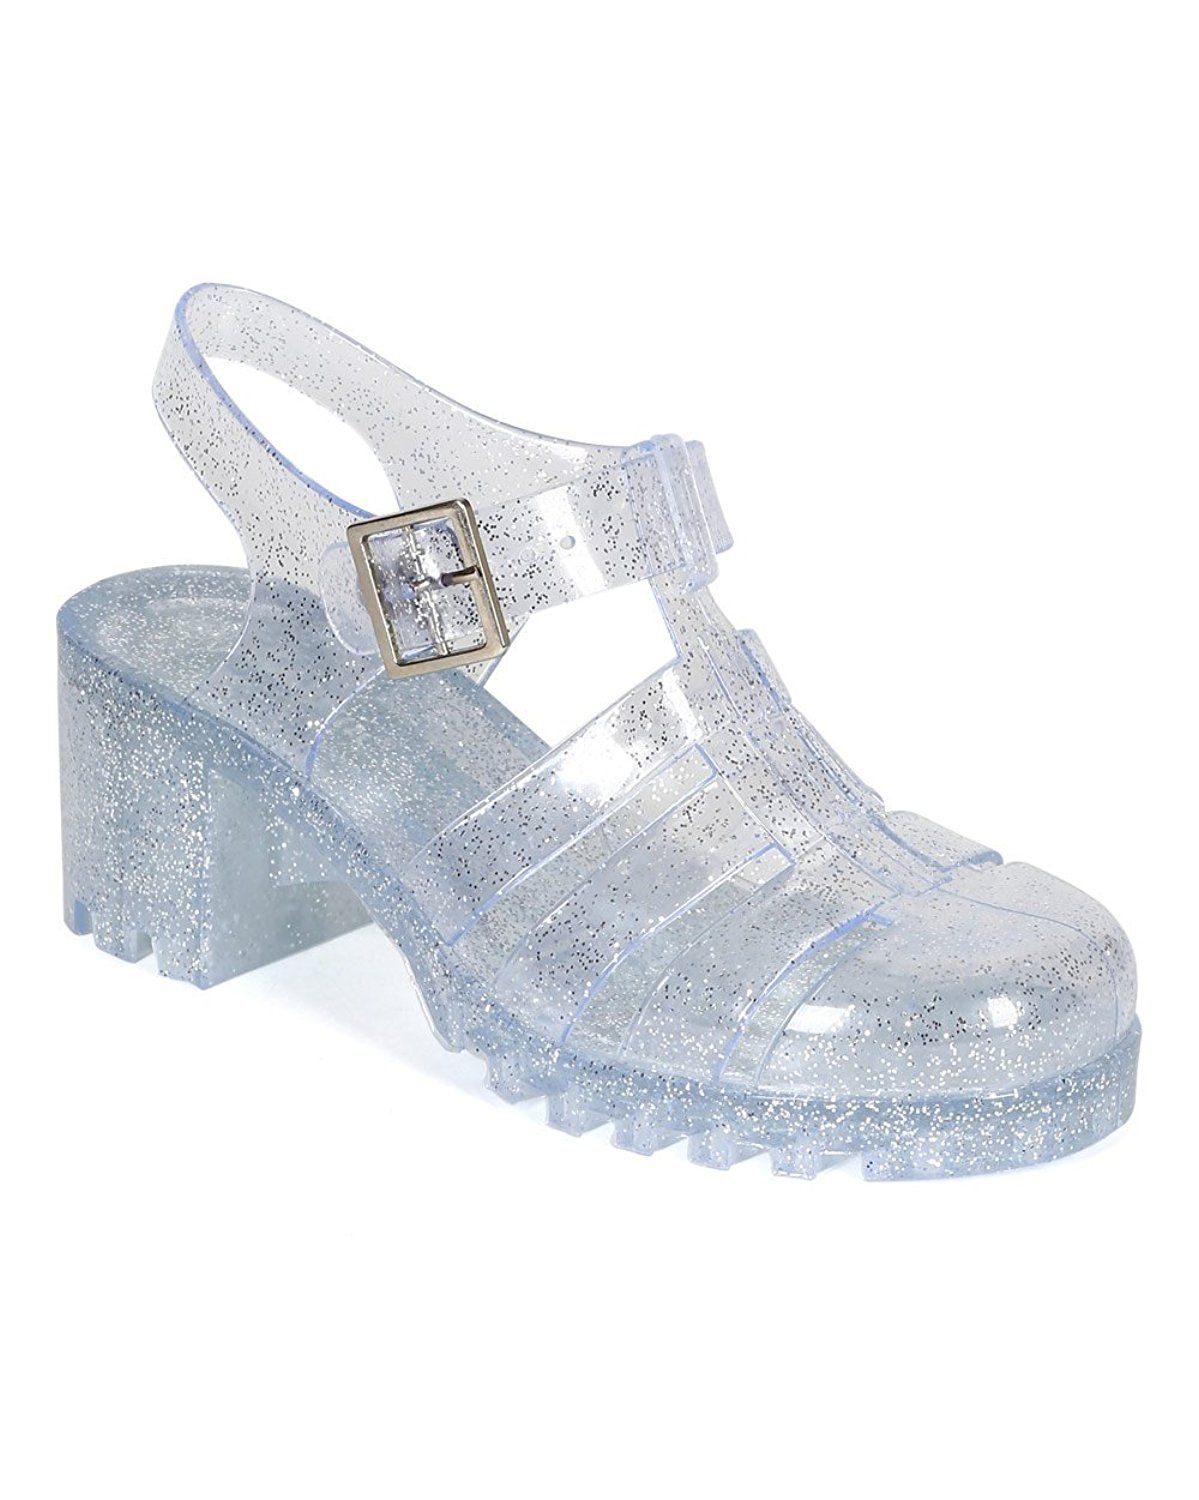 a0b9226fa831 Nature Breeze CK93 Women Glitter Jelly Round Toe Strappy Caged Gladiator  Chunky Heel Sandal - Clear    Don t get left behind